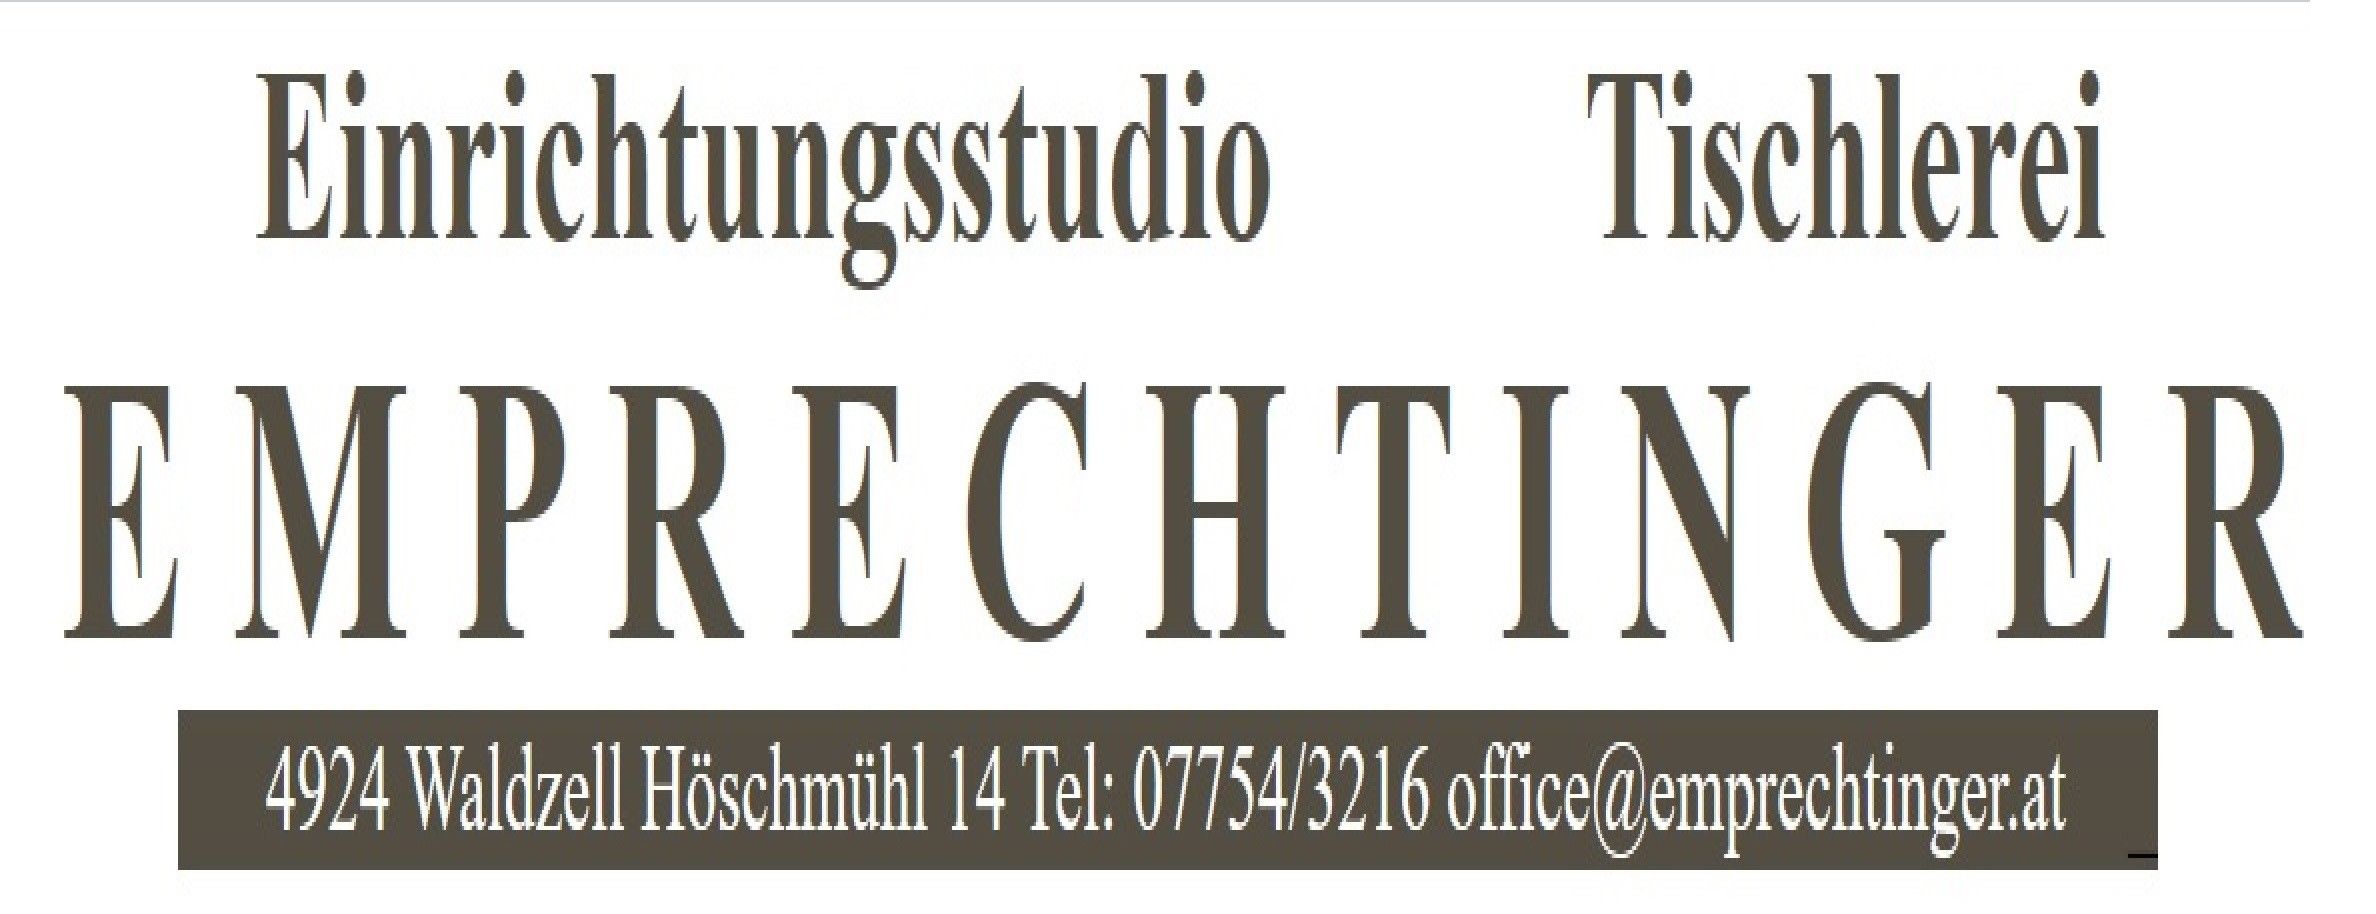 www.emprechtinger.at